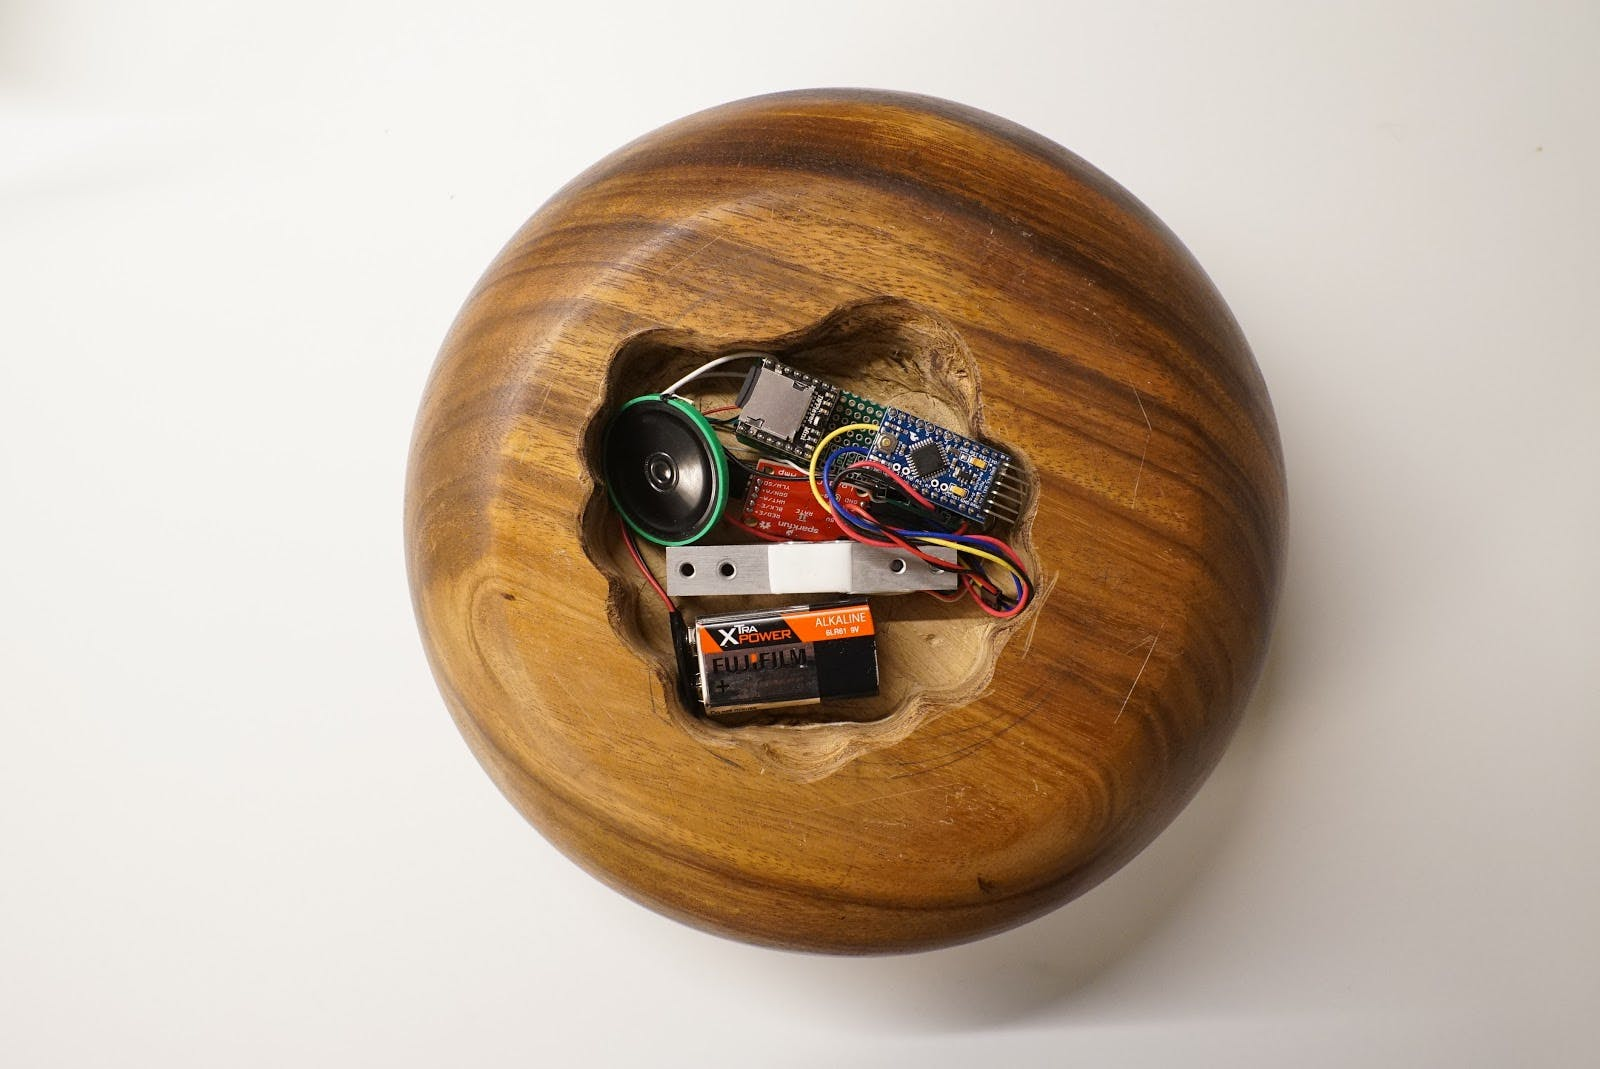 Electronics in a Bowl